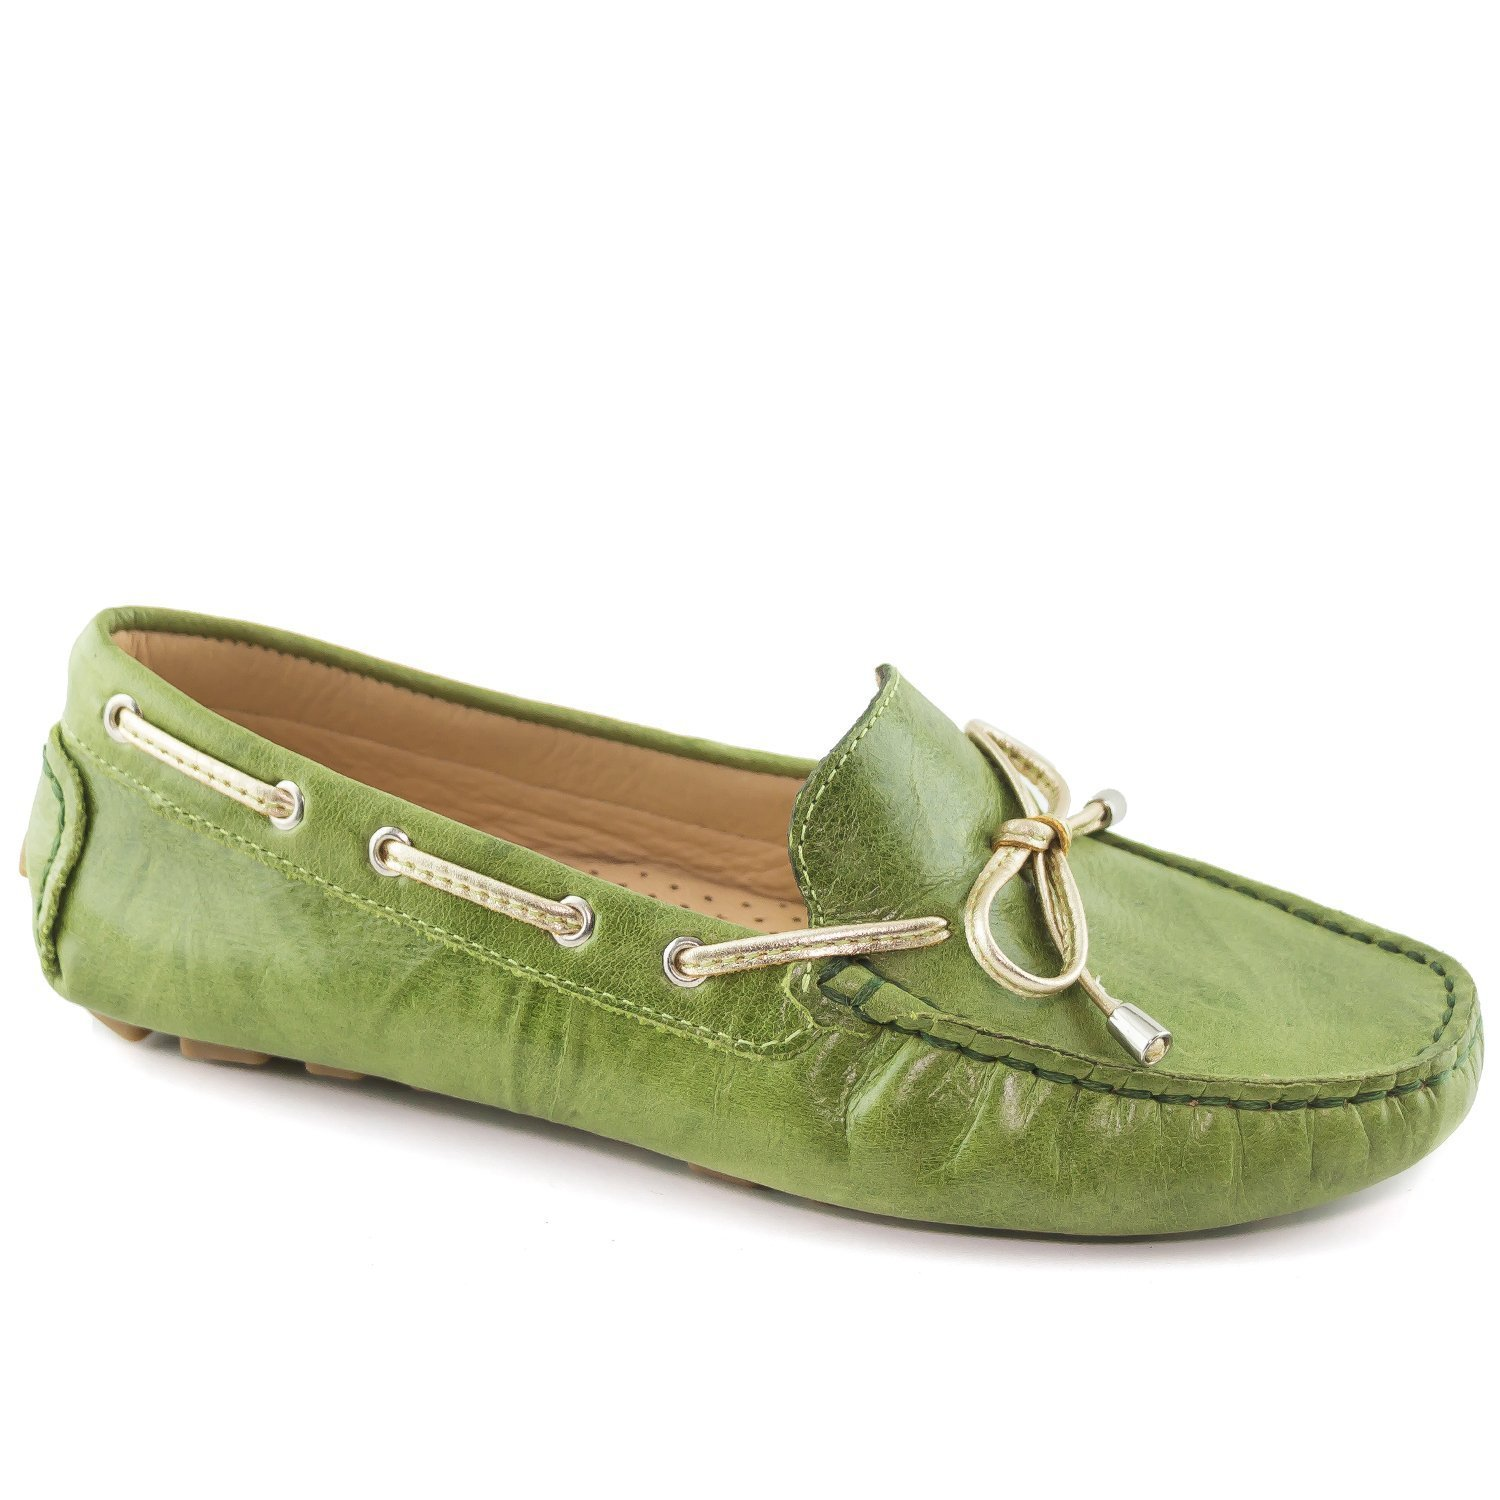 Driver Club USA Women's Genuine Leather Made in Brazil Nantucket Classic Lime Green Crush 9.5